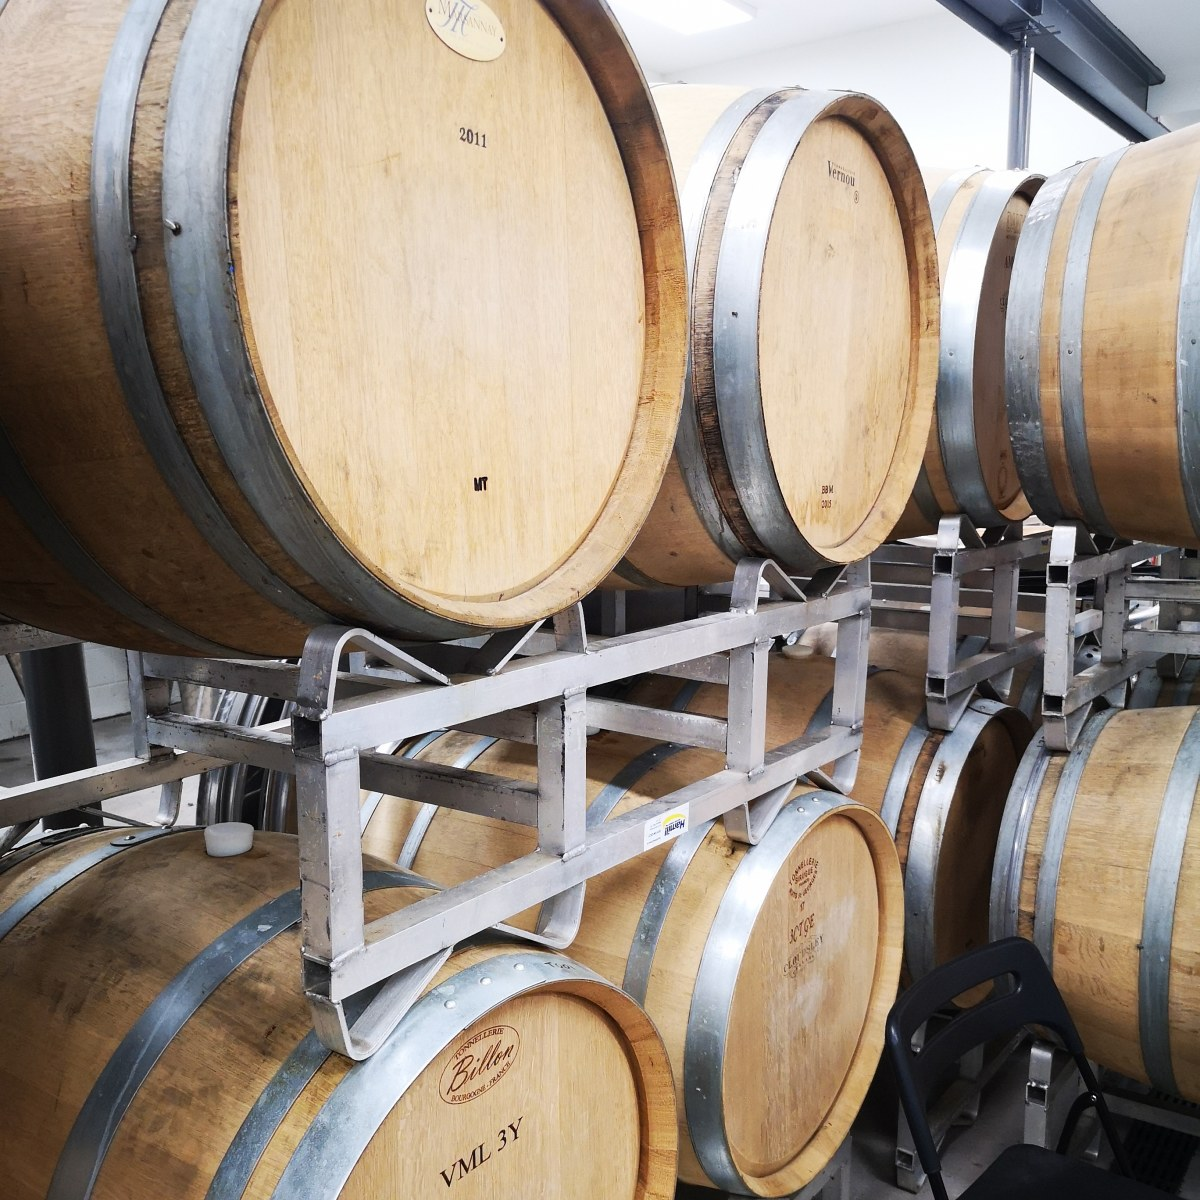 Cloudsley Cellars is a winery located in the Niagara Falls wine country area.